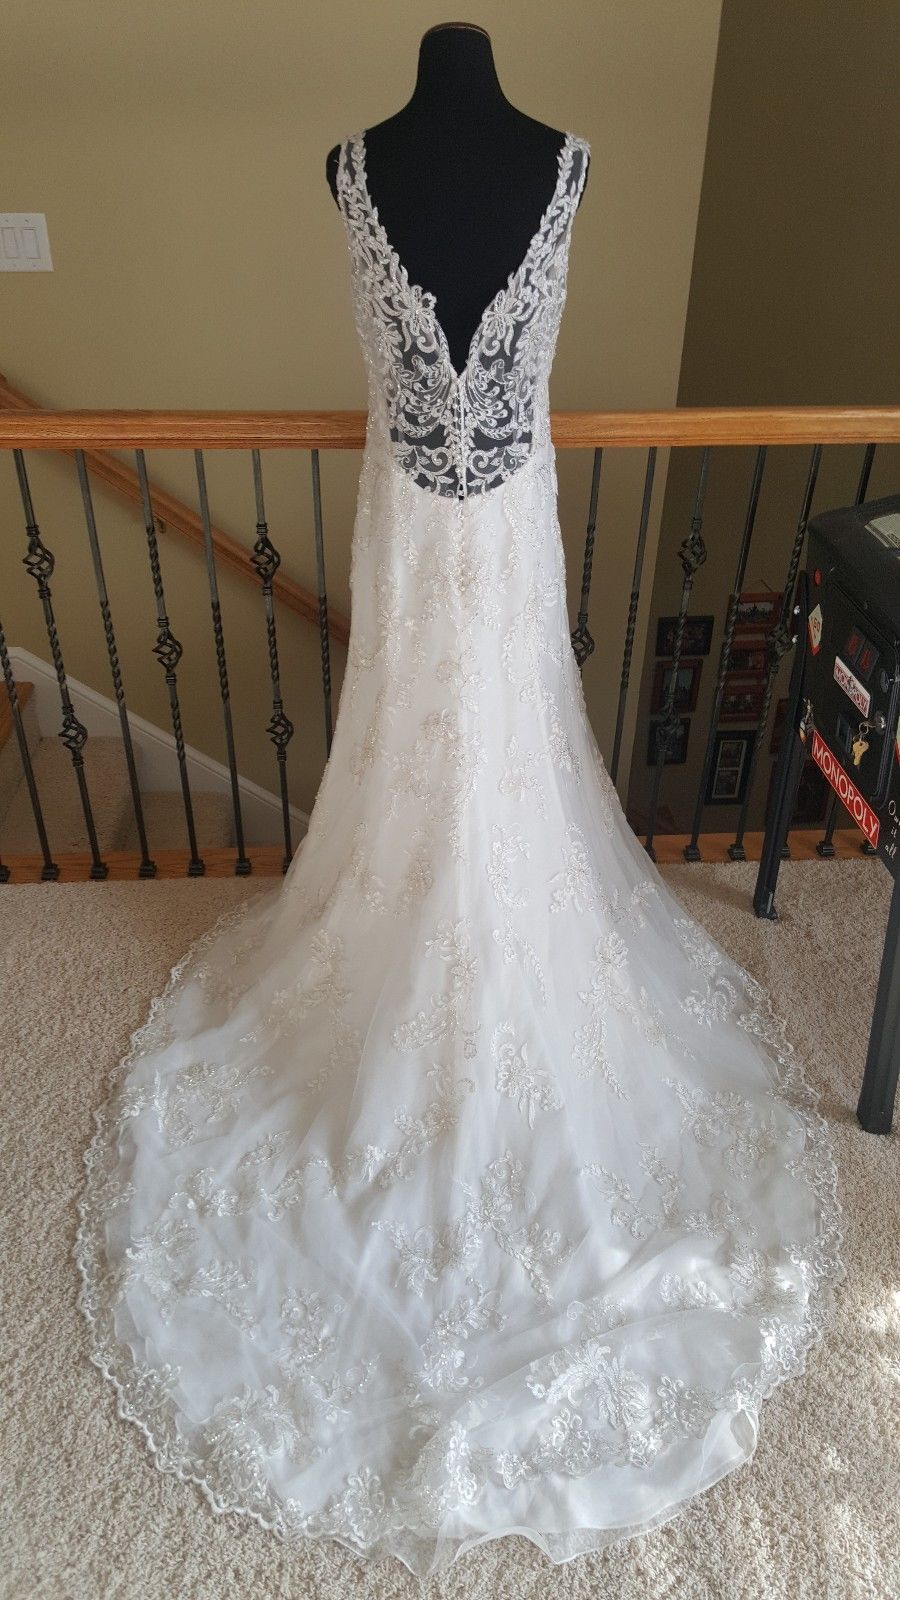 New 1570 Maggie Sottero Verina Marie Ivory Lace Wedding Dress Size 12 Size 12 Wedding Dress Ivory Lace Wedding Dress Ebay Wedding Dress